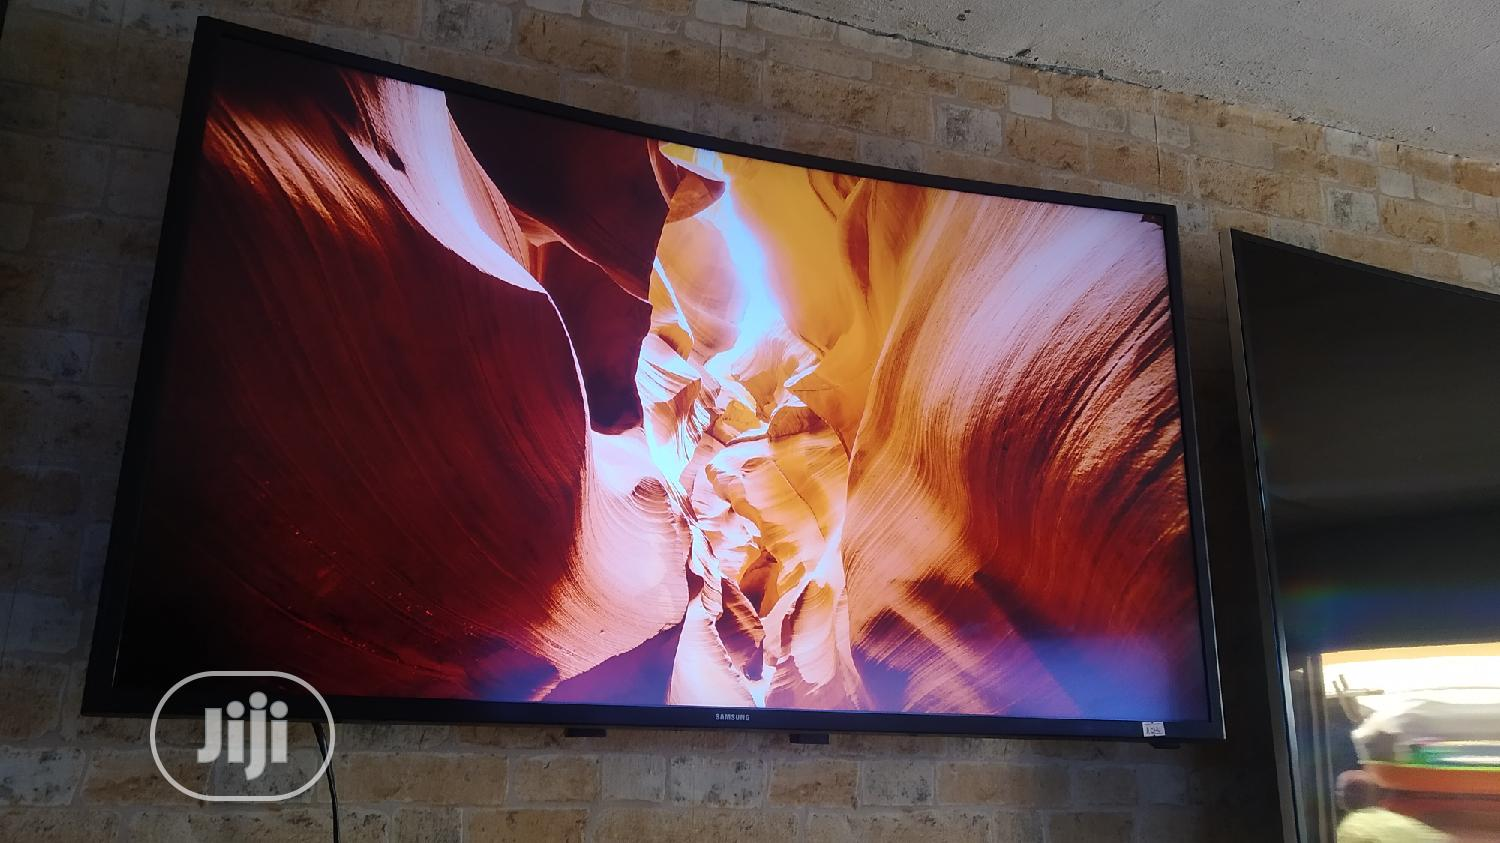 40 Inches Samsung Curved Smart Ultra High Definition 4k TV | TV & DVD Equipment for sale in Ojo, Lagos State, Nigeria